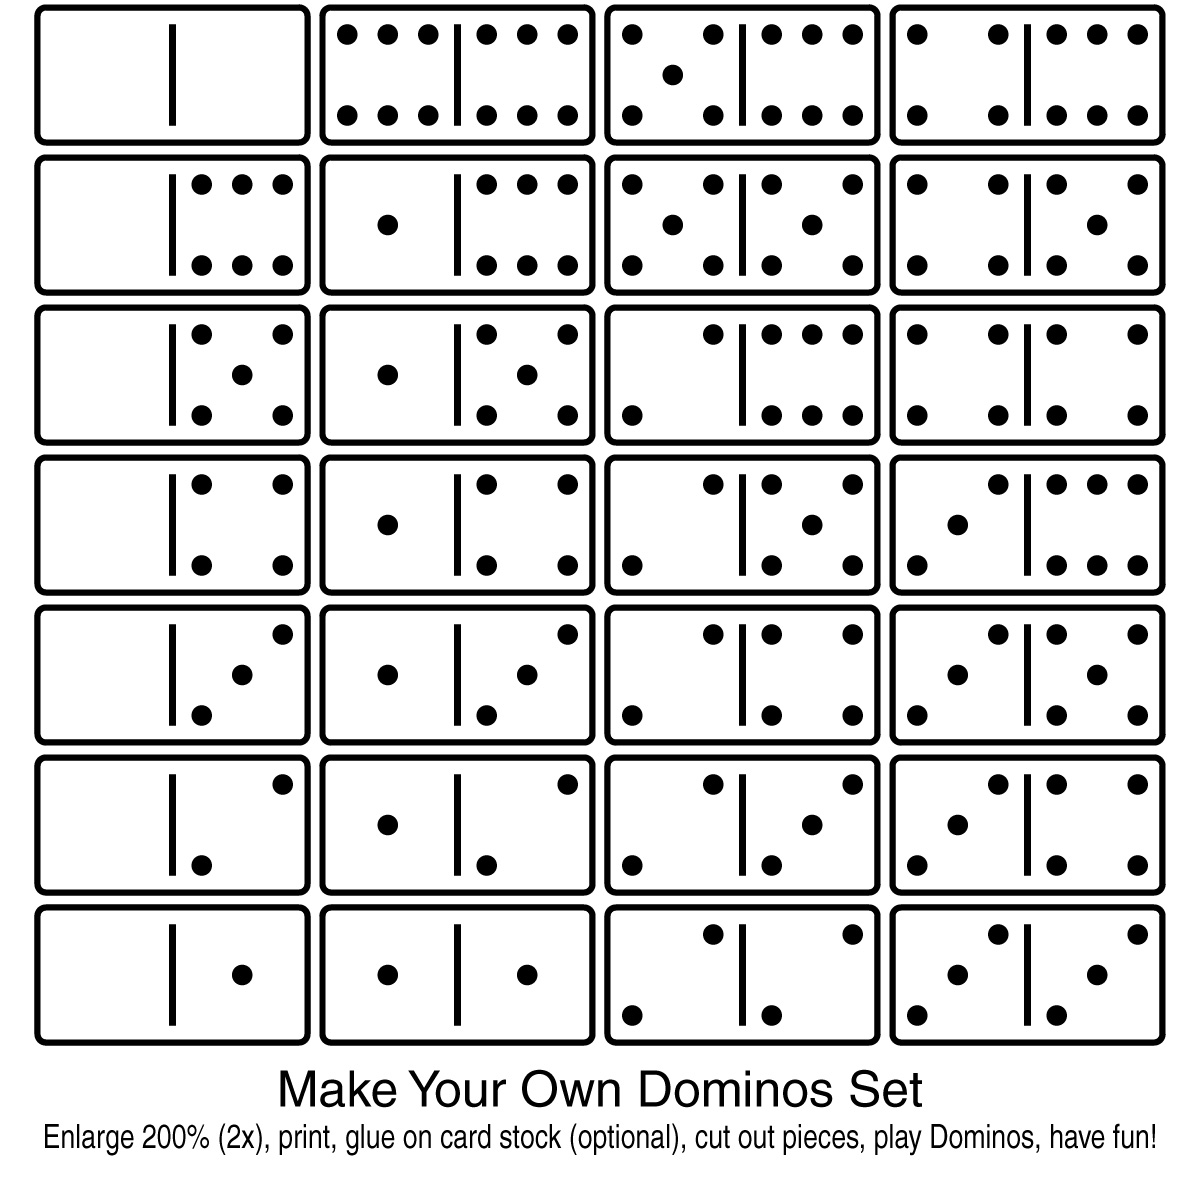 6 Images of Phonics Printable Domino Game Pieces